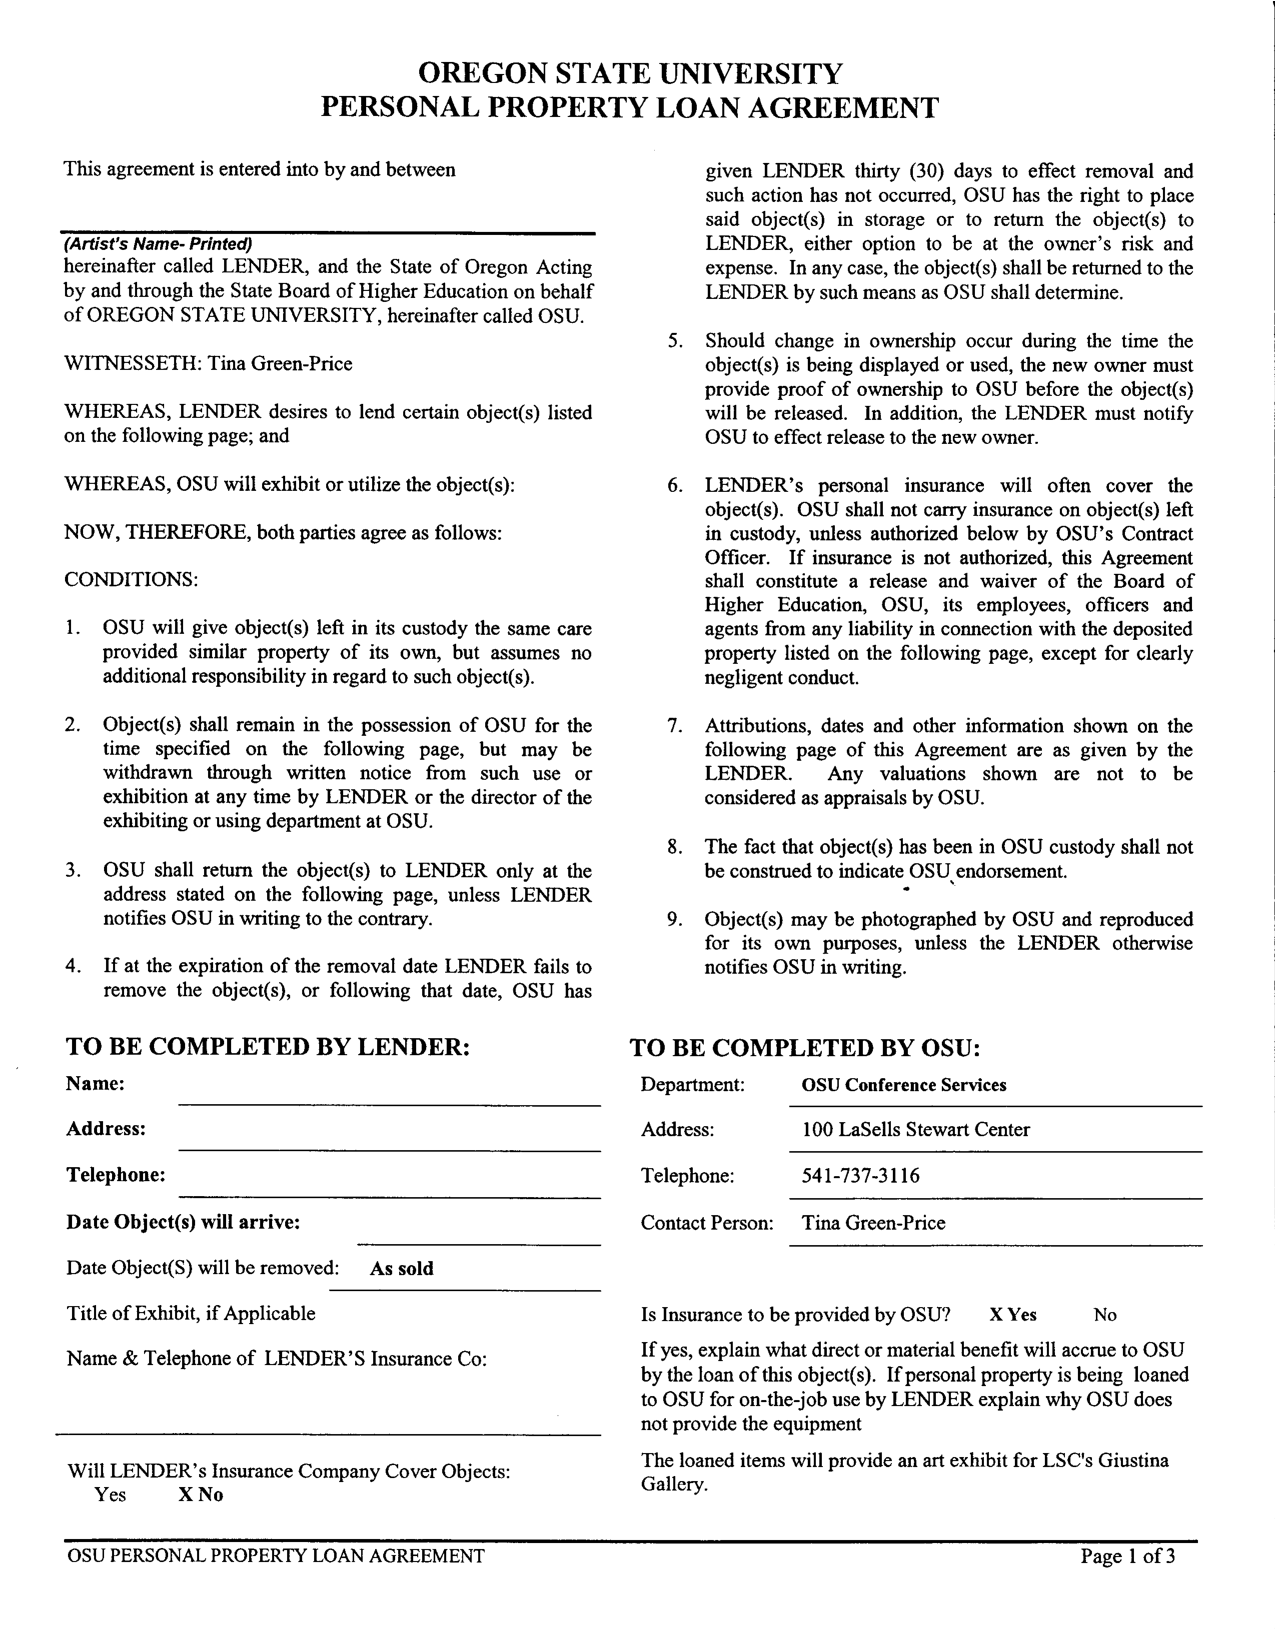 Free Printable Personal Loan Contract Form (GENERIC) Personal Loan Contract  721 Personal Loan Contract  Bank Loan Agreement Format